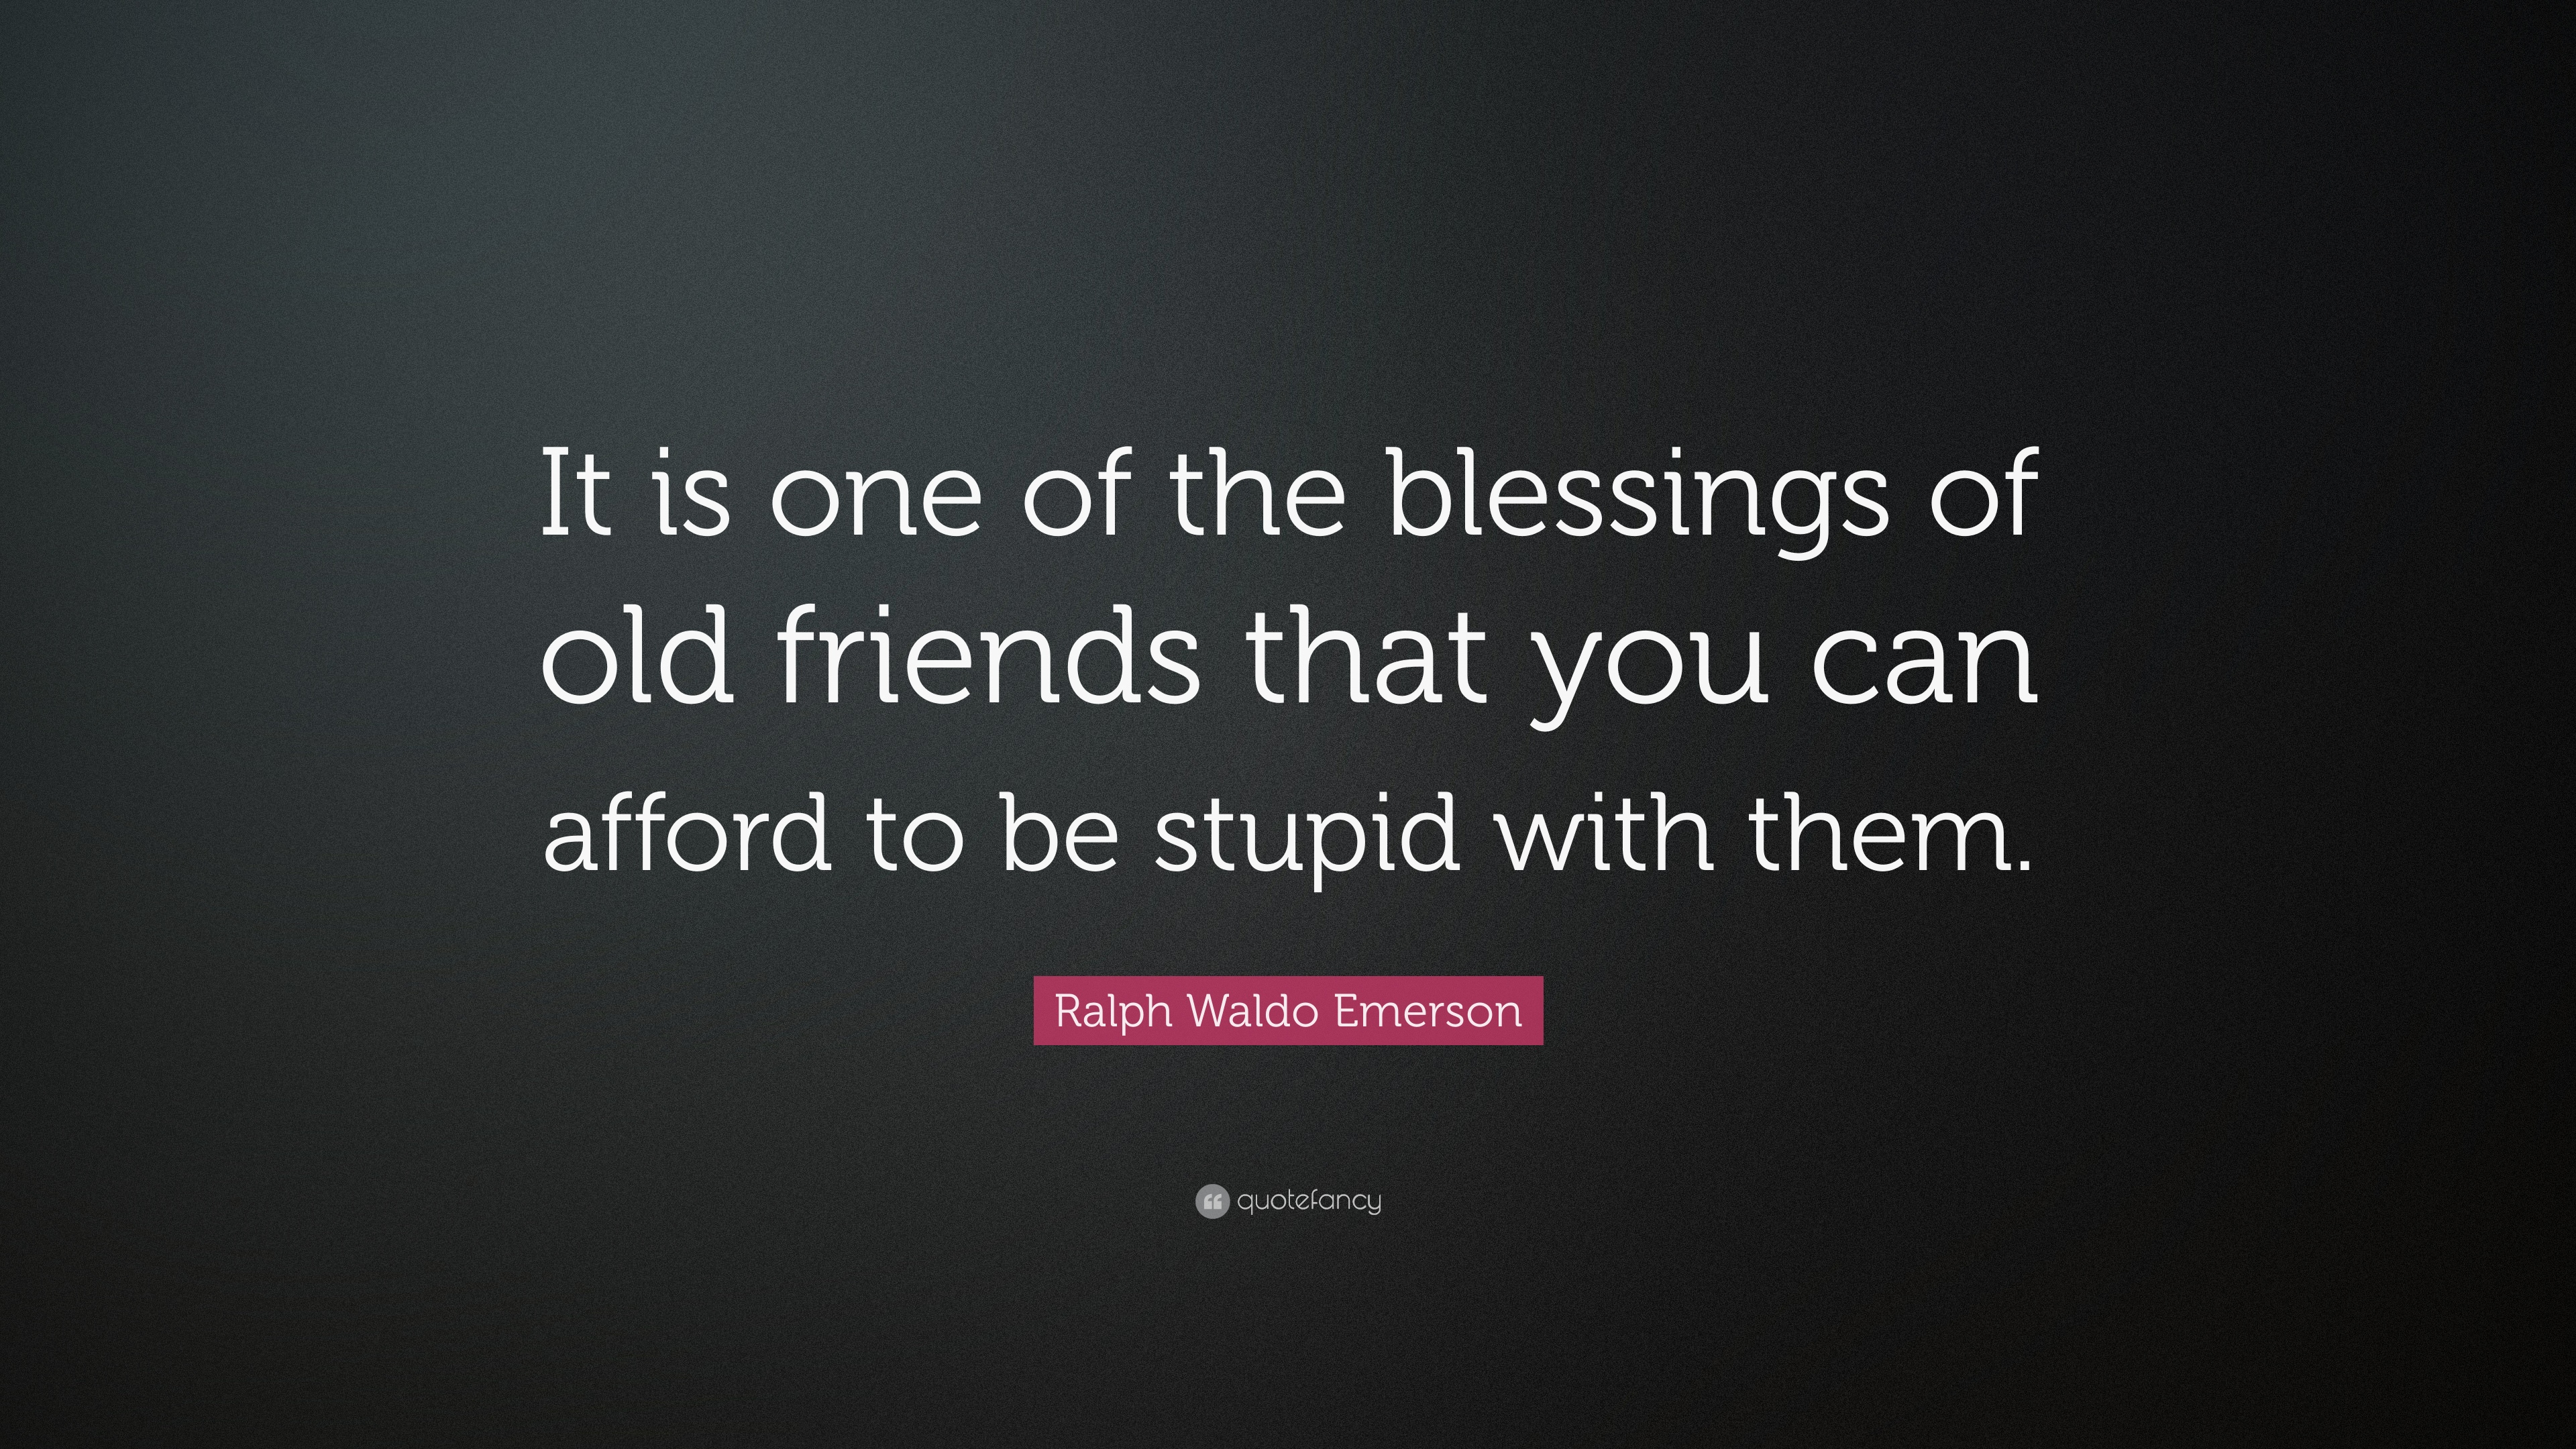 Quote About Friendships Friendship Quotes 21 Wallpapers  Quotefancy